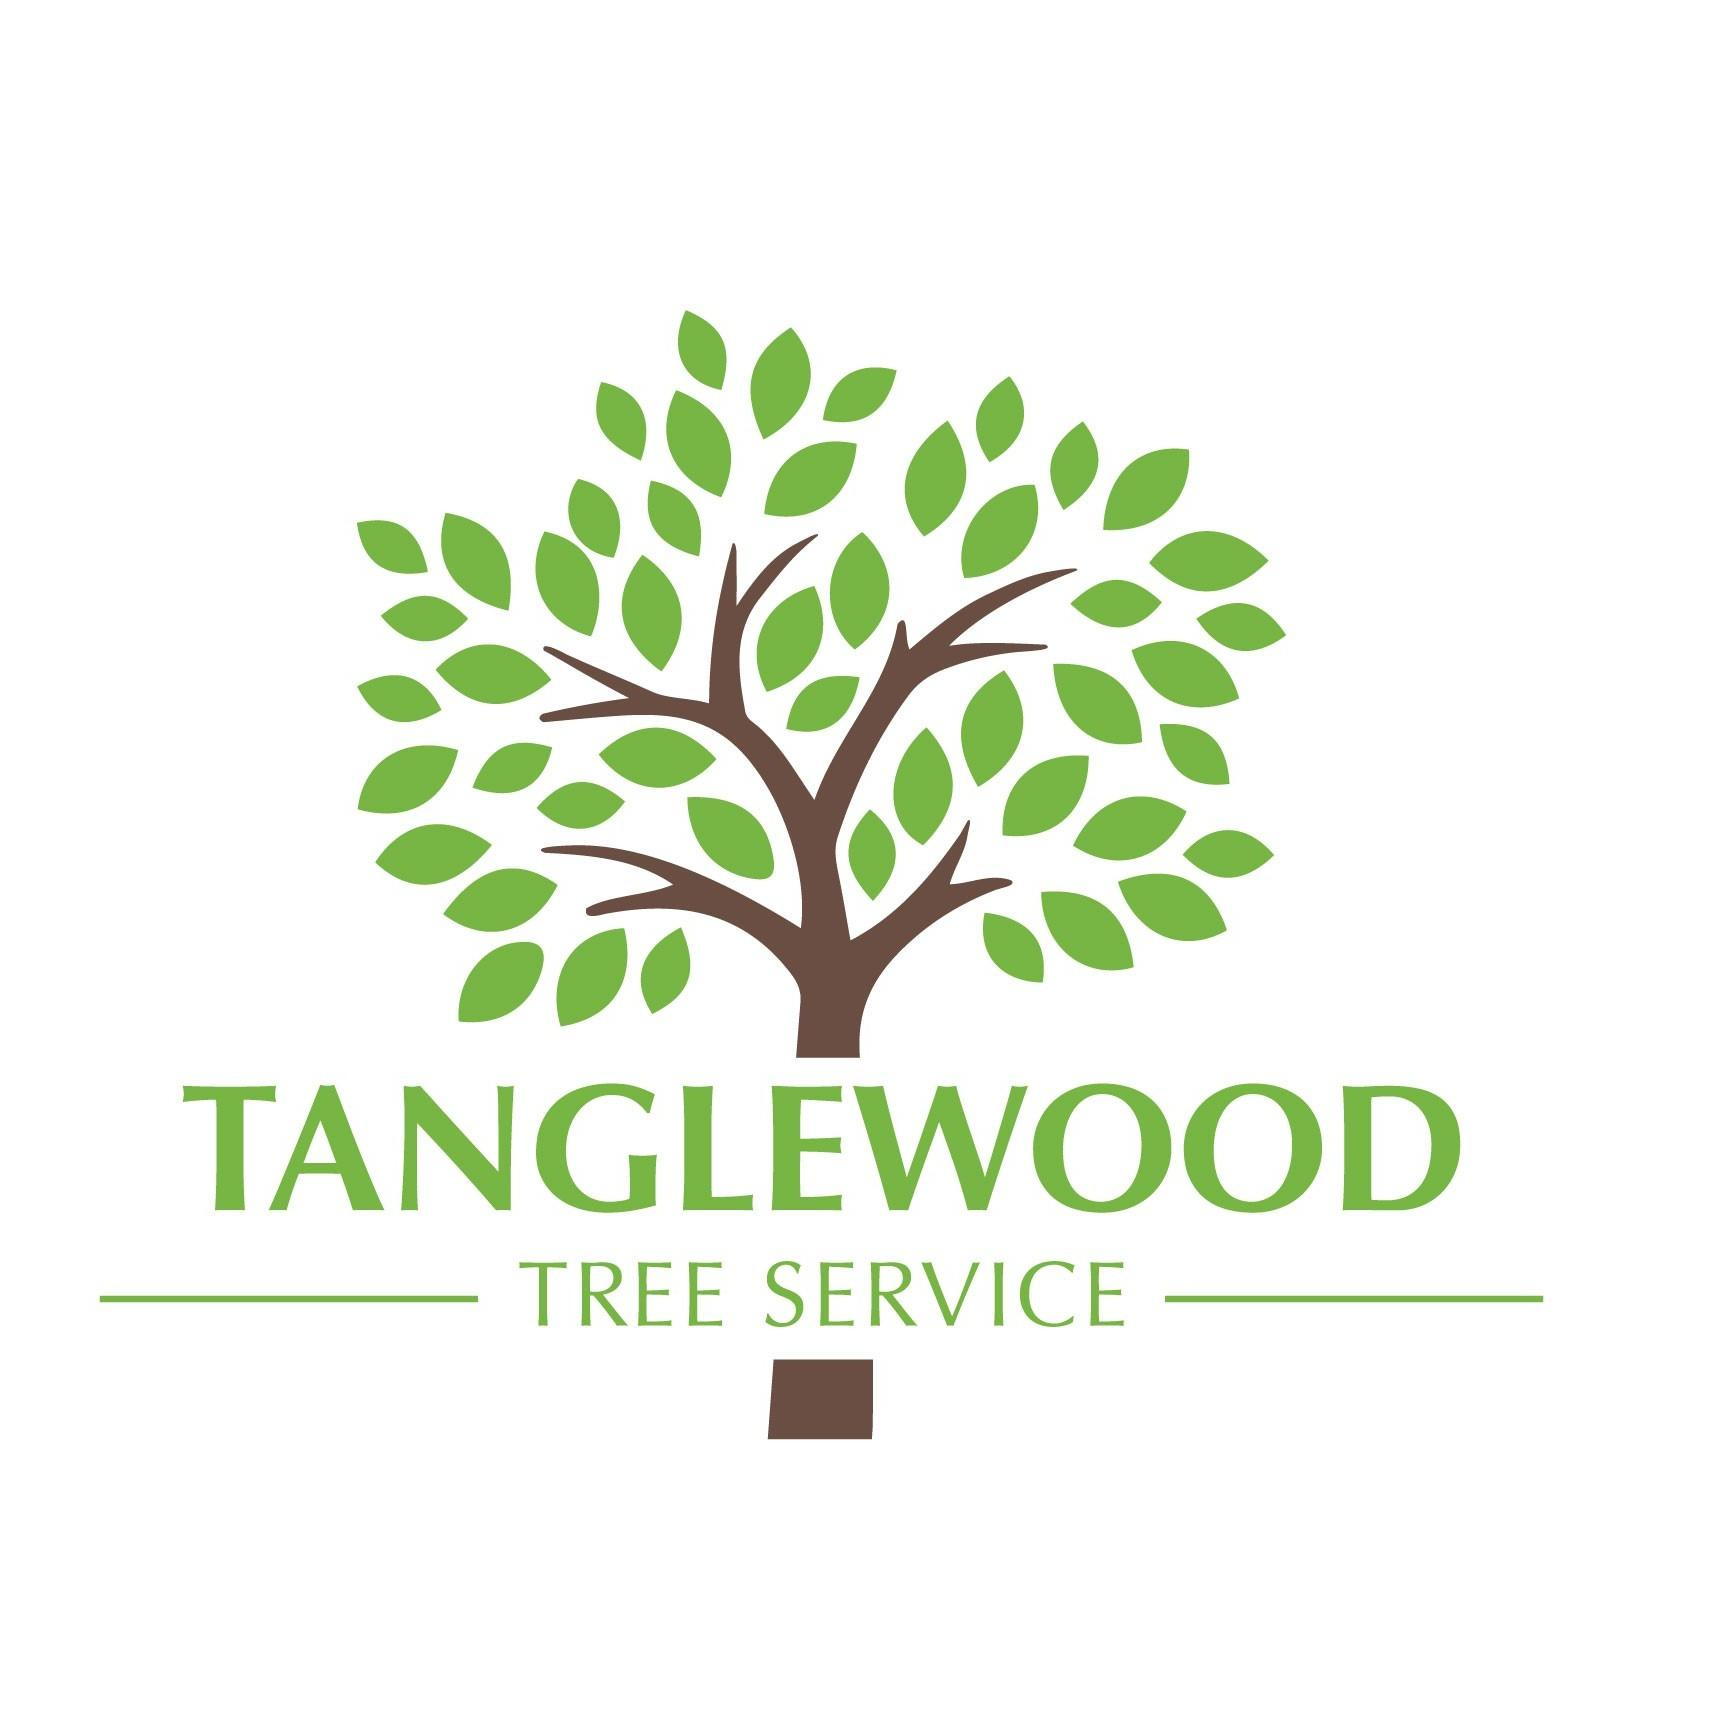 Tanglewood Tree Service - Ft. Collins, CO - Tree Services